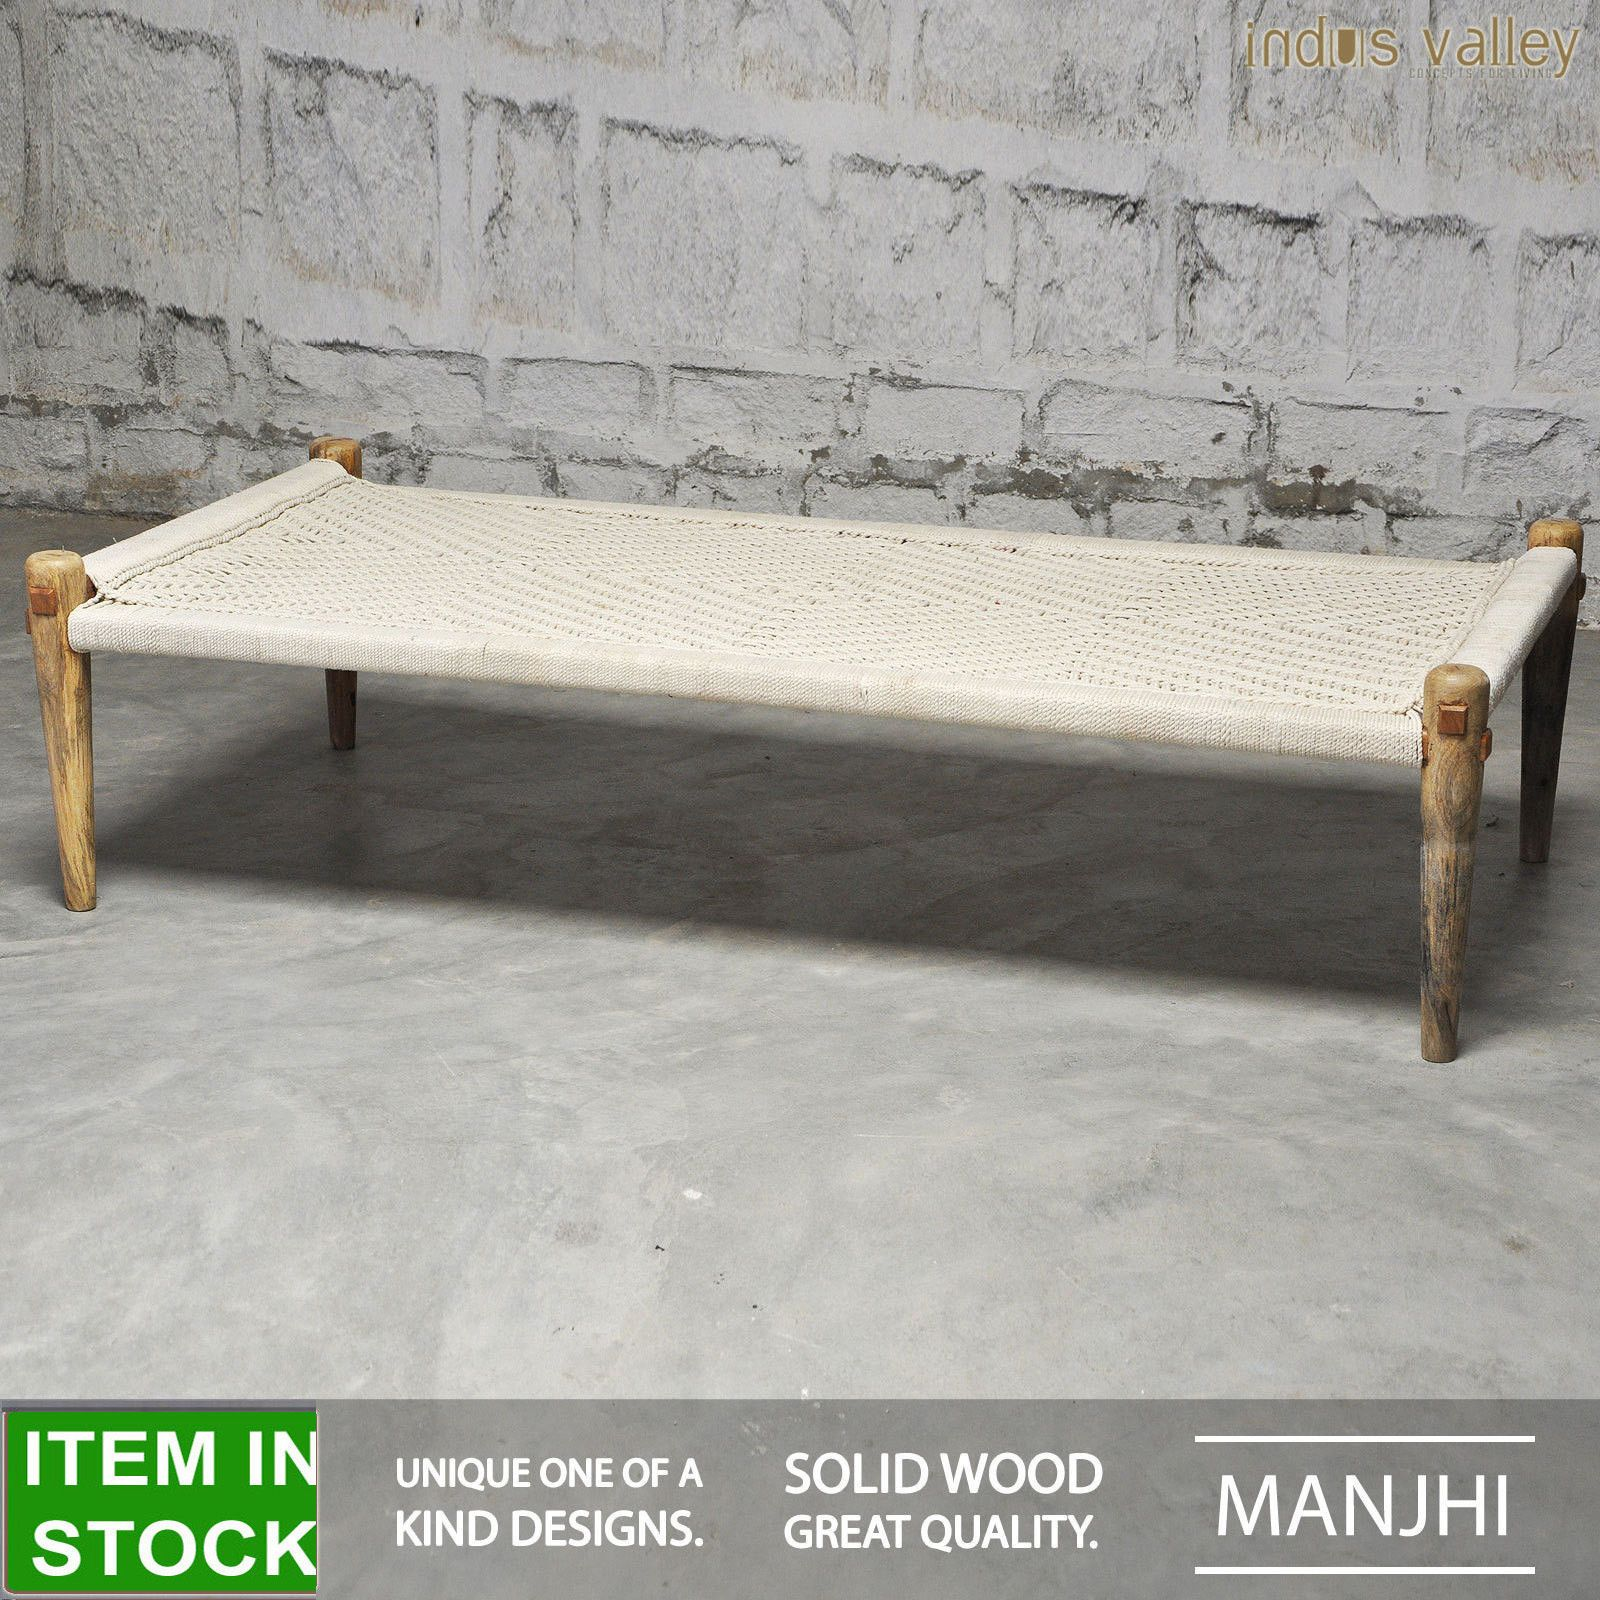 Manjhi woven Indian daybed day bed bench charpai charpoy manjha